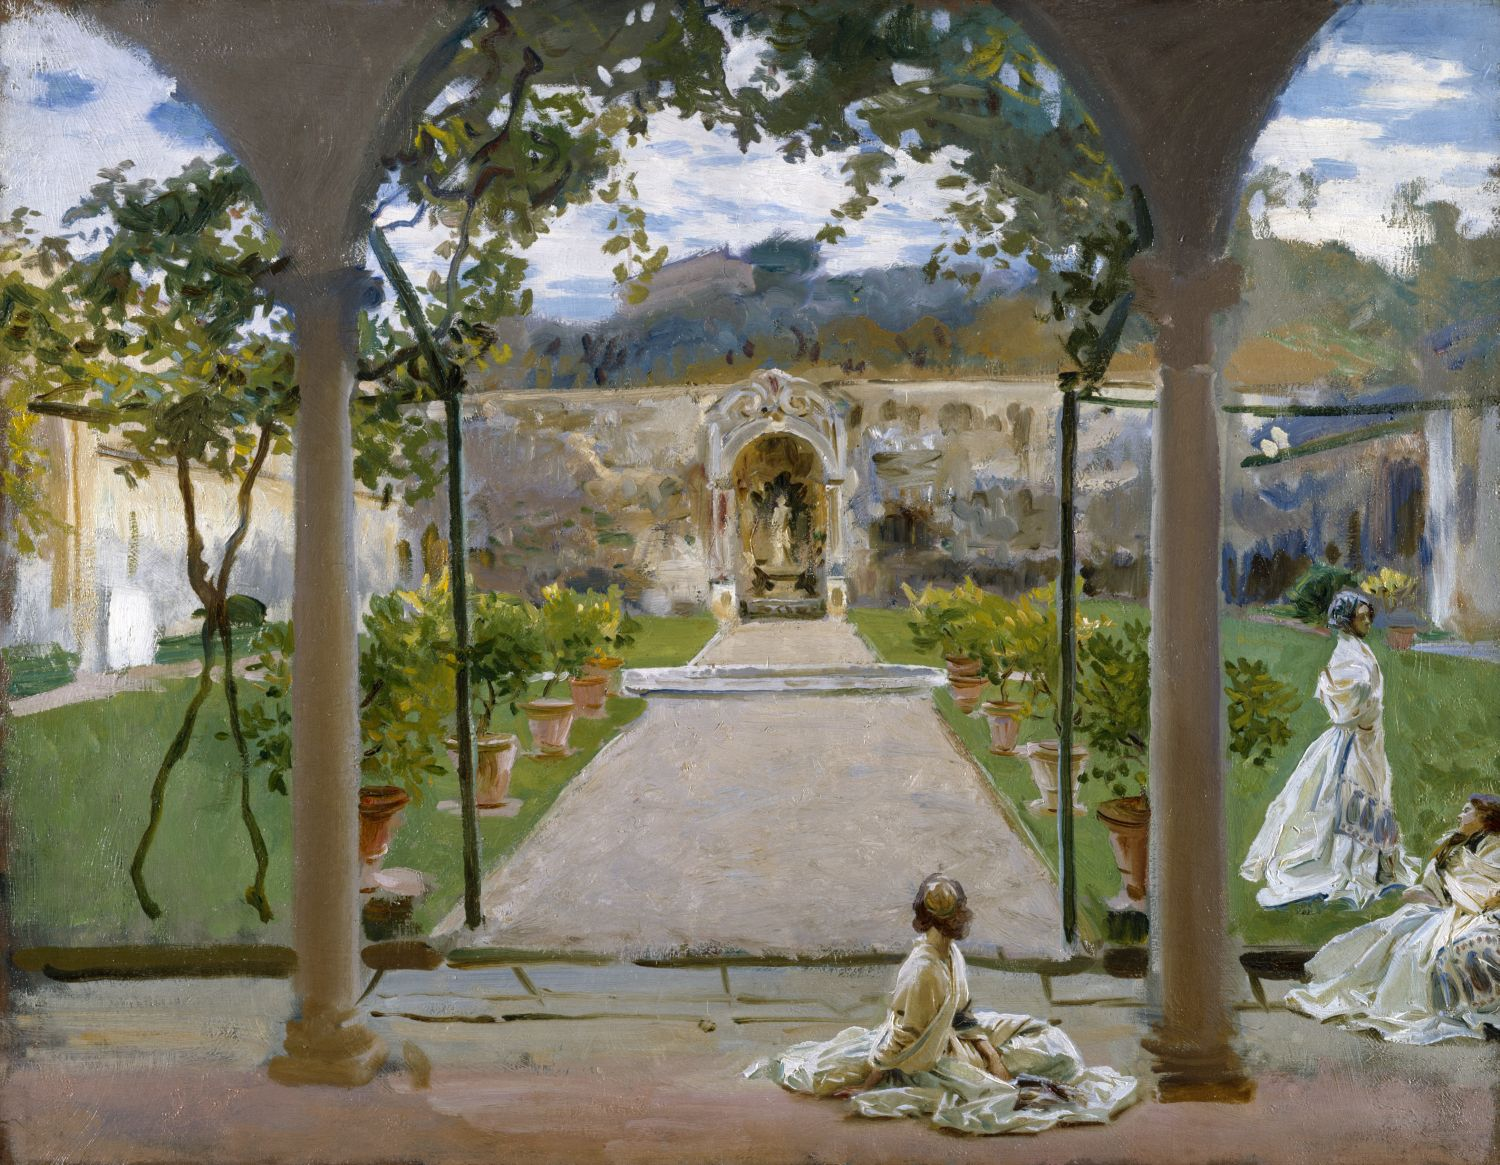 John Singer Sargent (1856-1925) At Torre Galli. Ladies in a Garden, 1910 olio su tela, 71.1x91.5 cm Londra, The Royal Academy of Arts